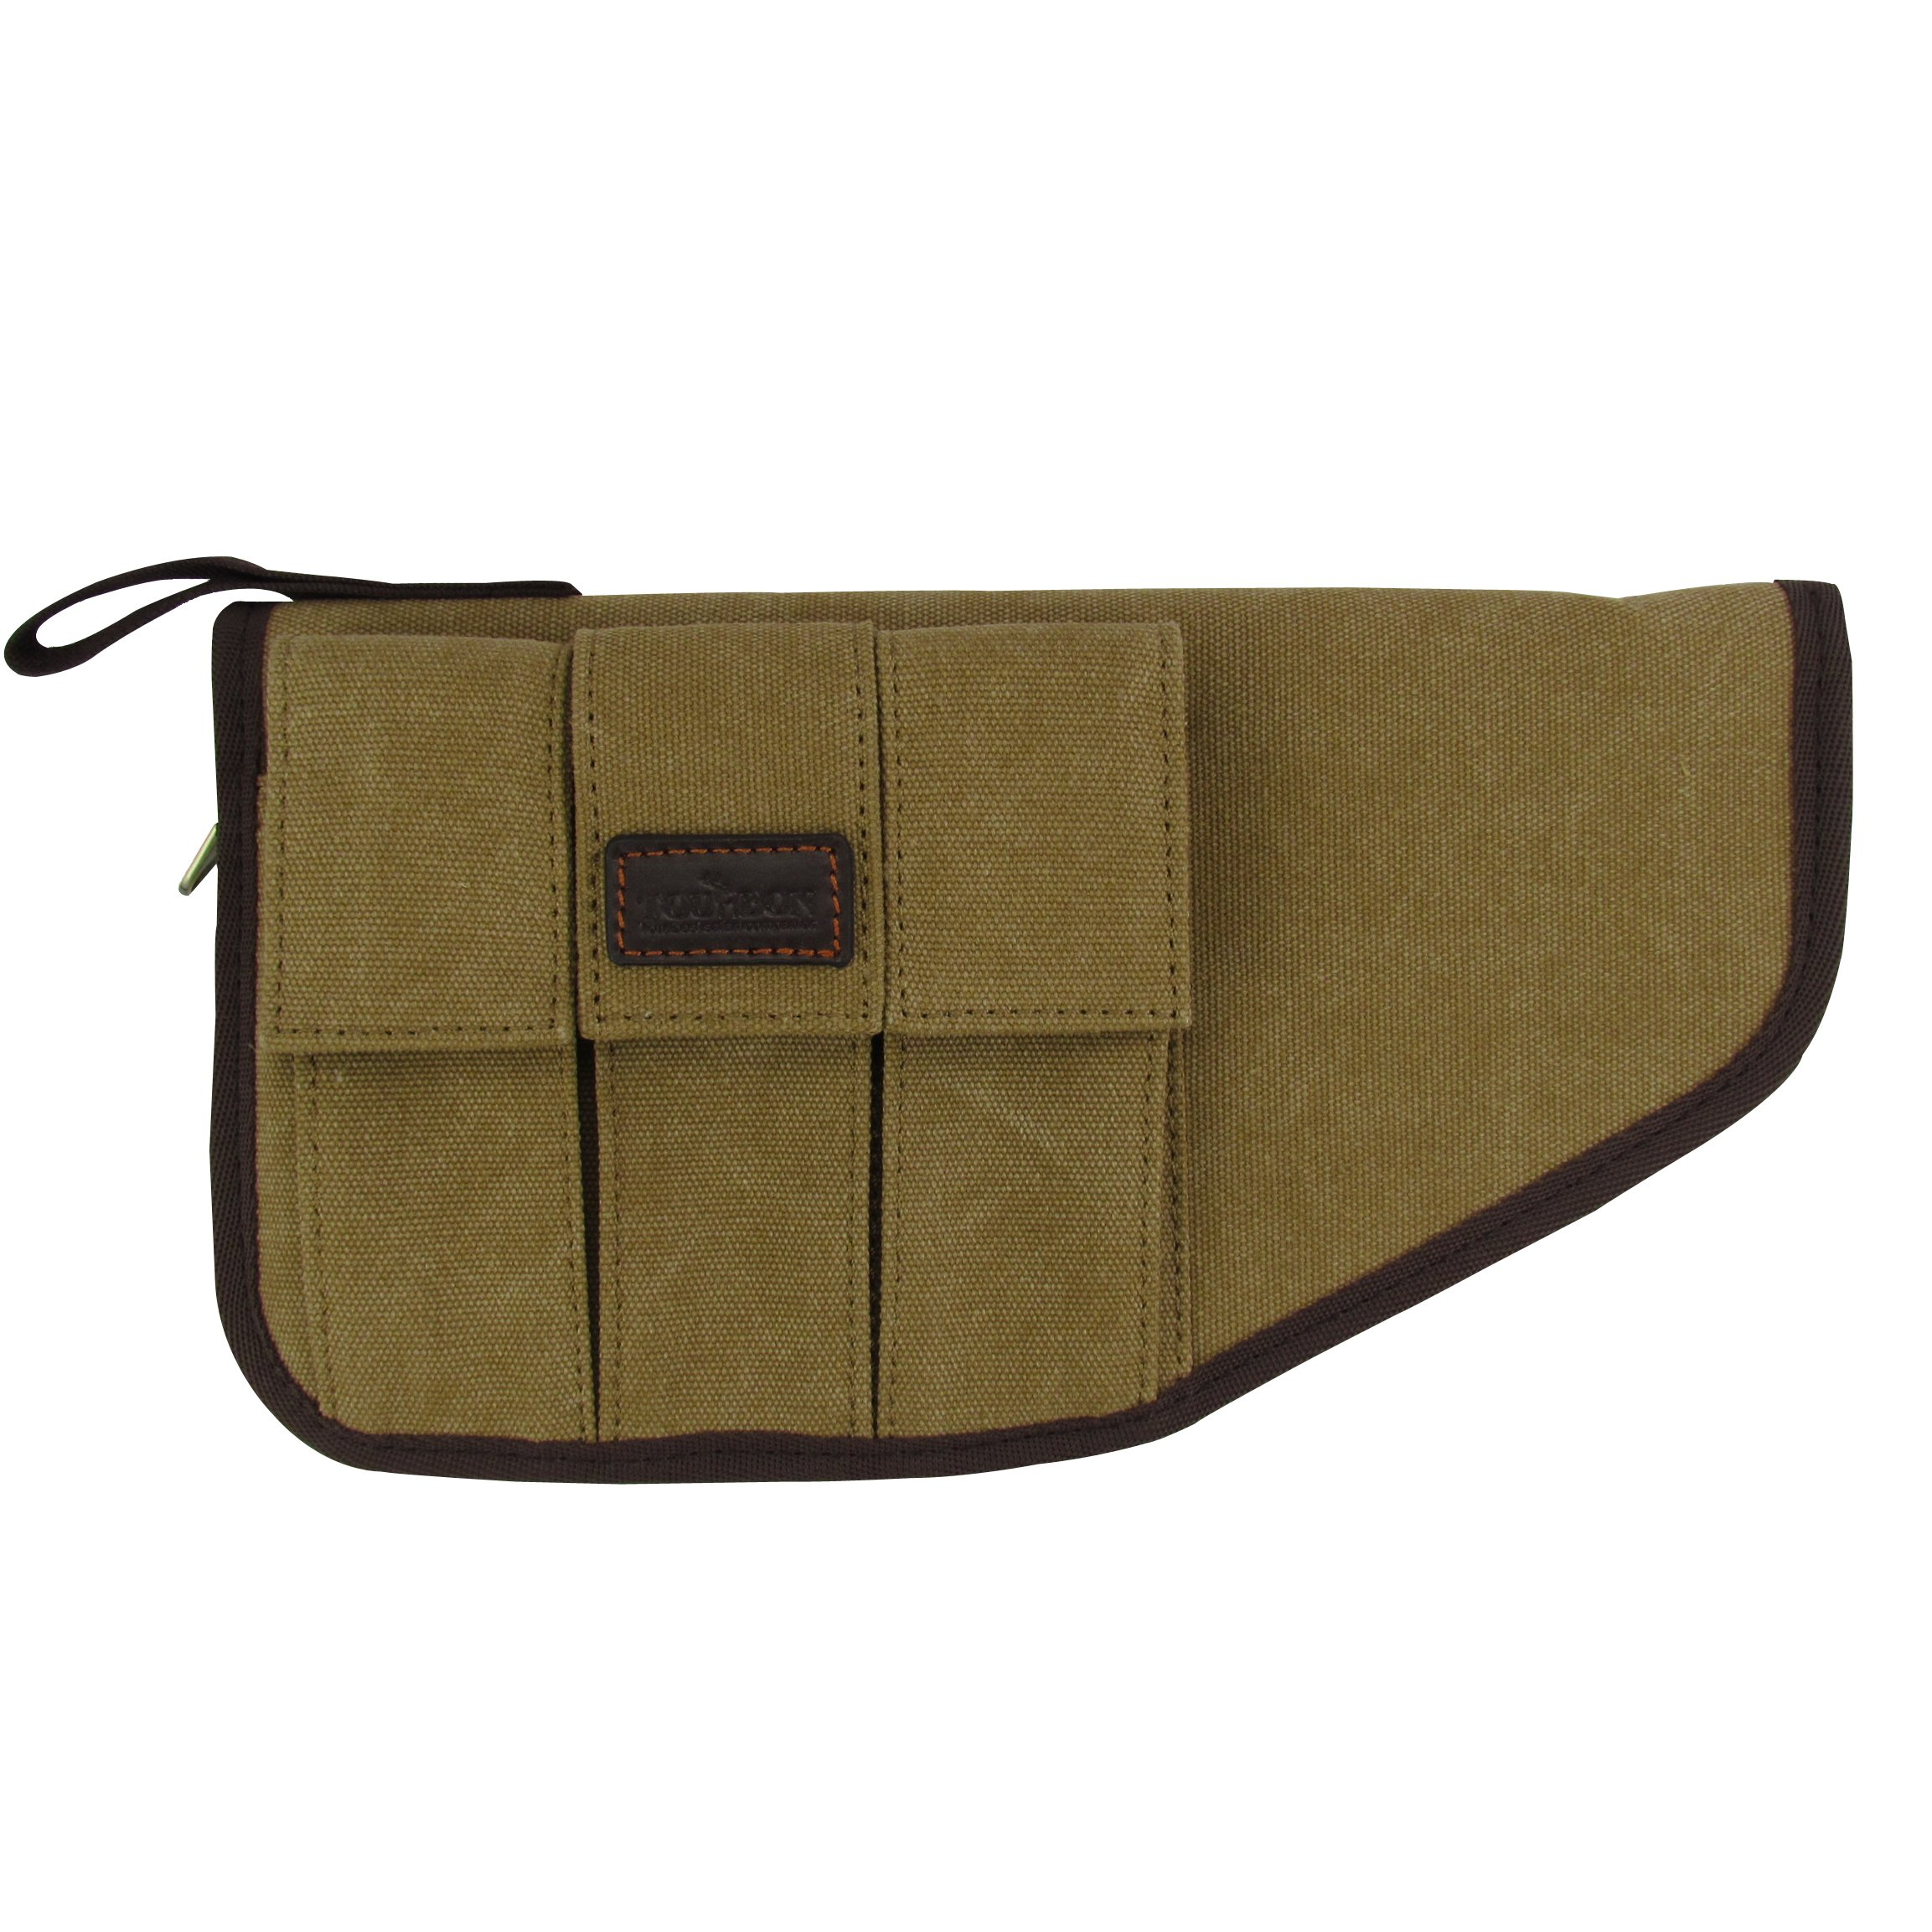 TOURBON Canvas Hand Gun Pouch Pistol Rug with Gun Accessories Pocket